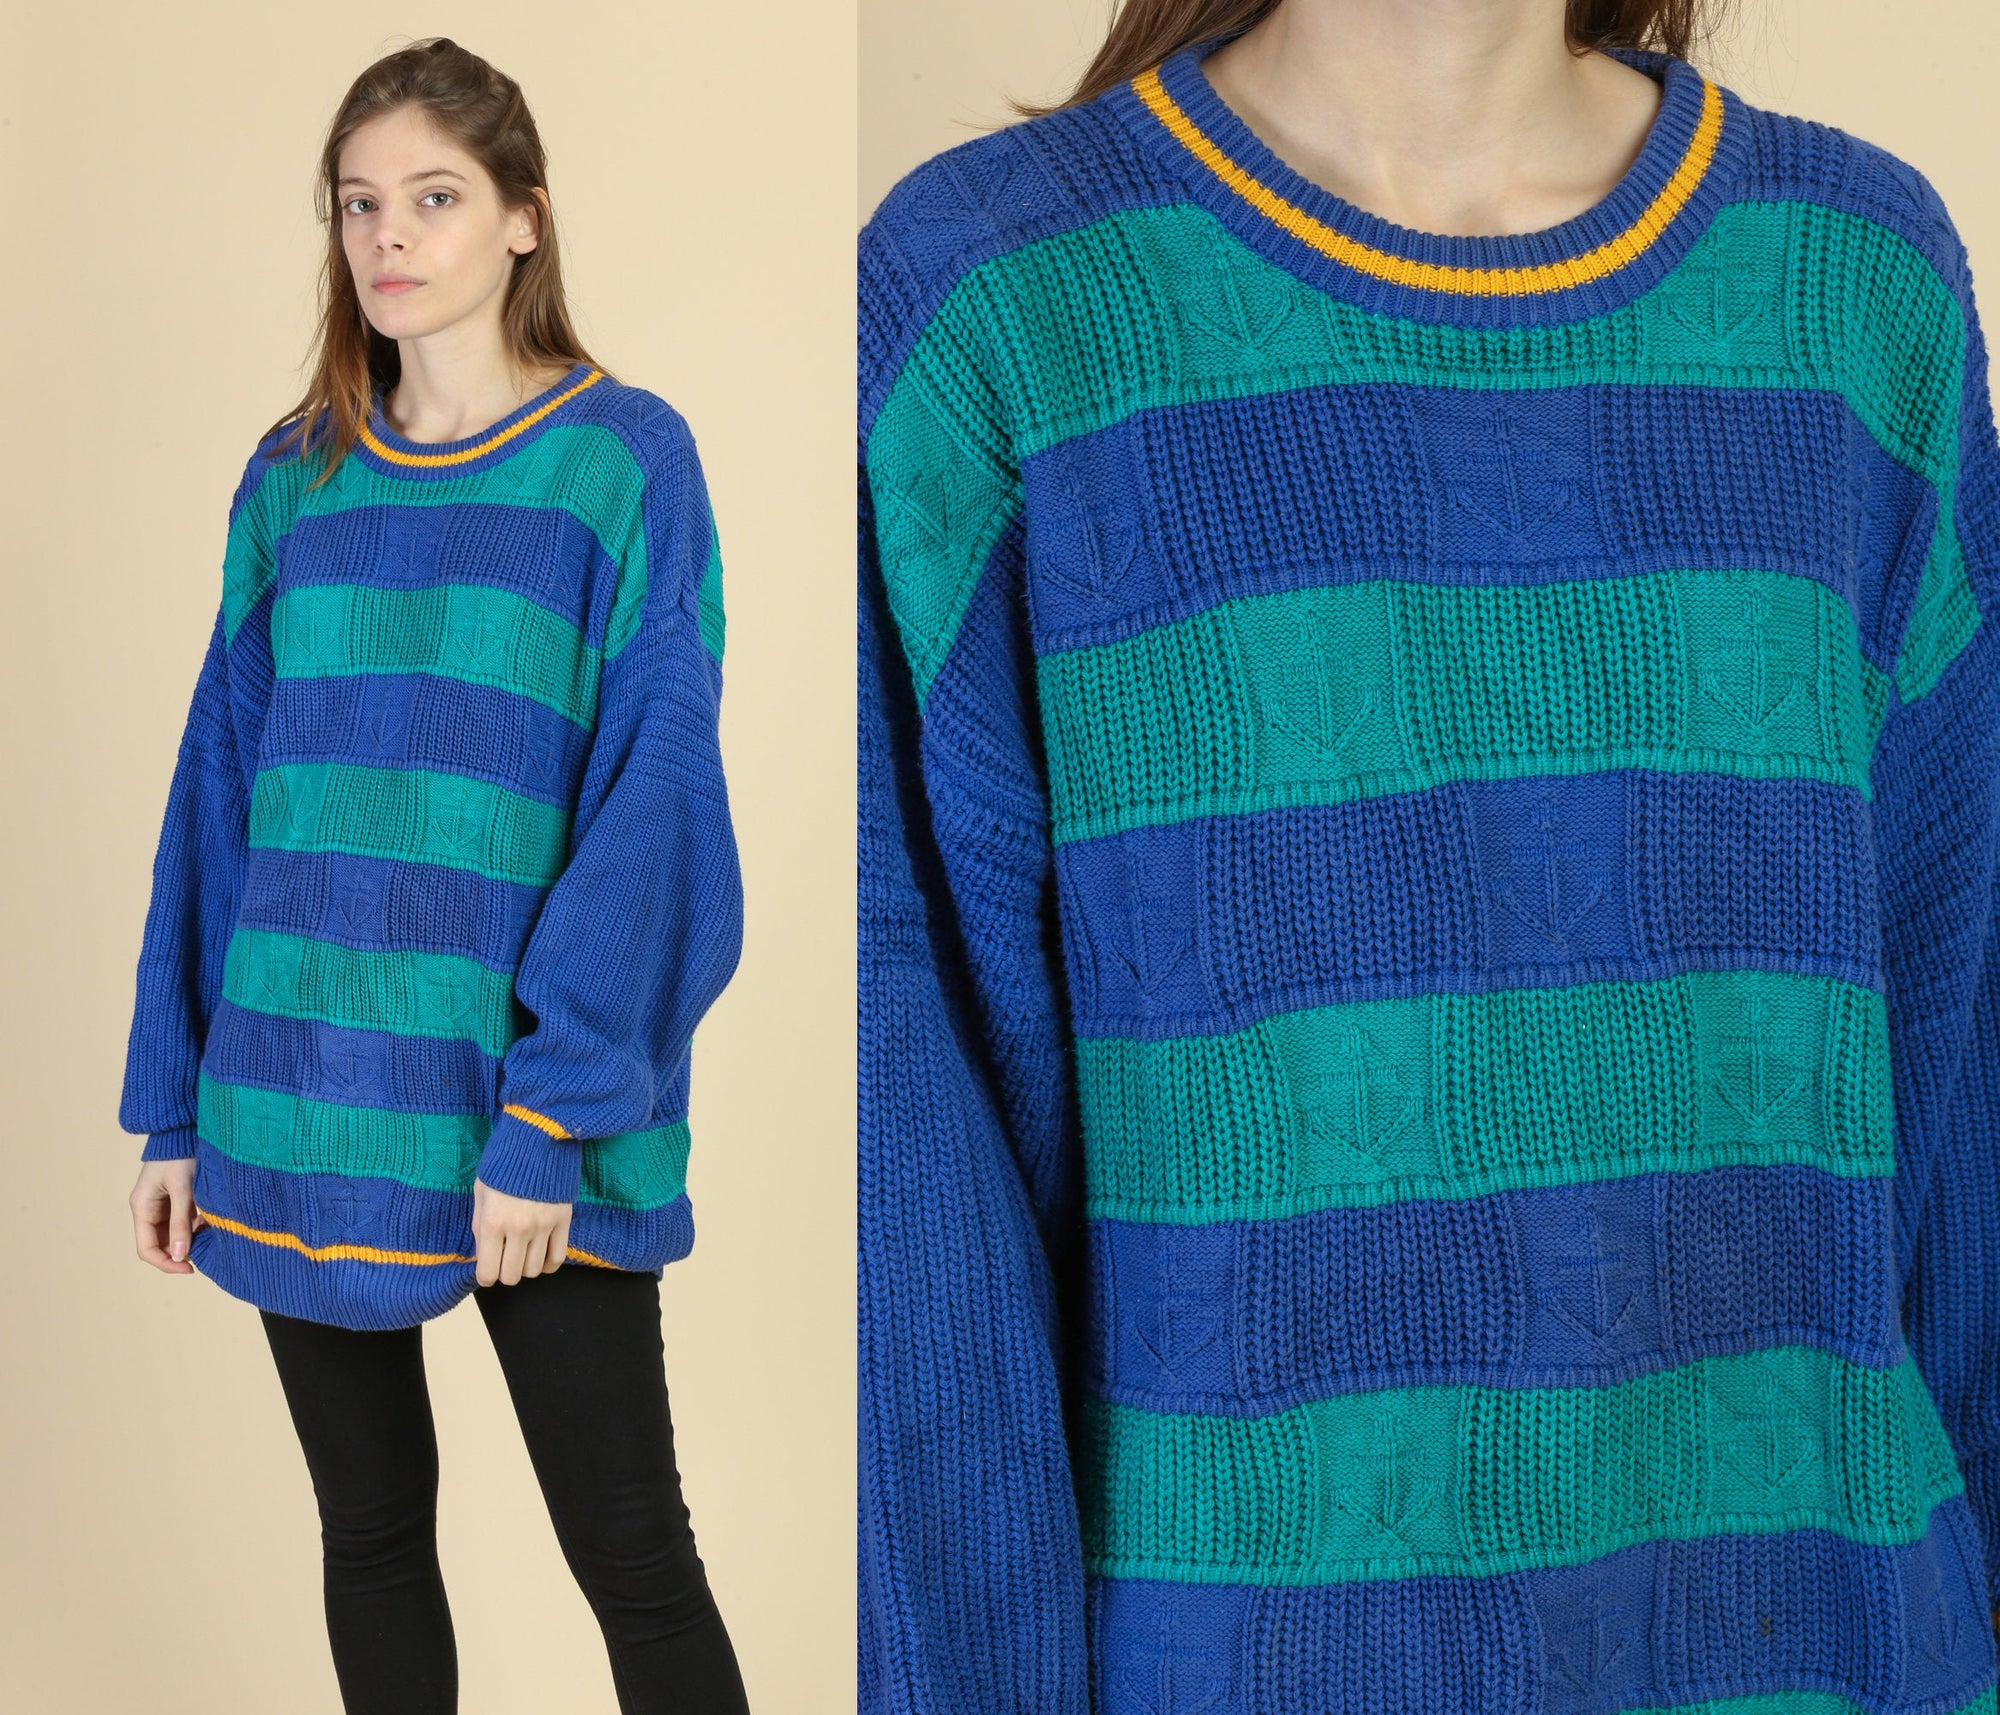 90s Oversize Knit Anchor Sweater - XXL